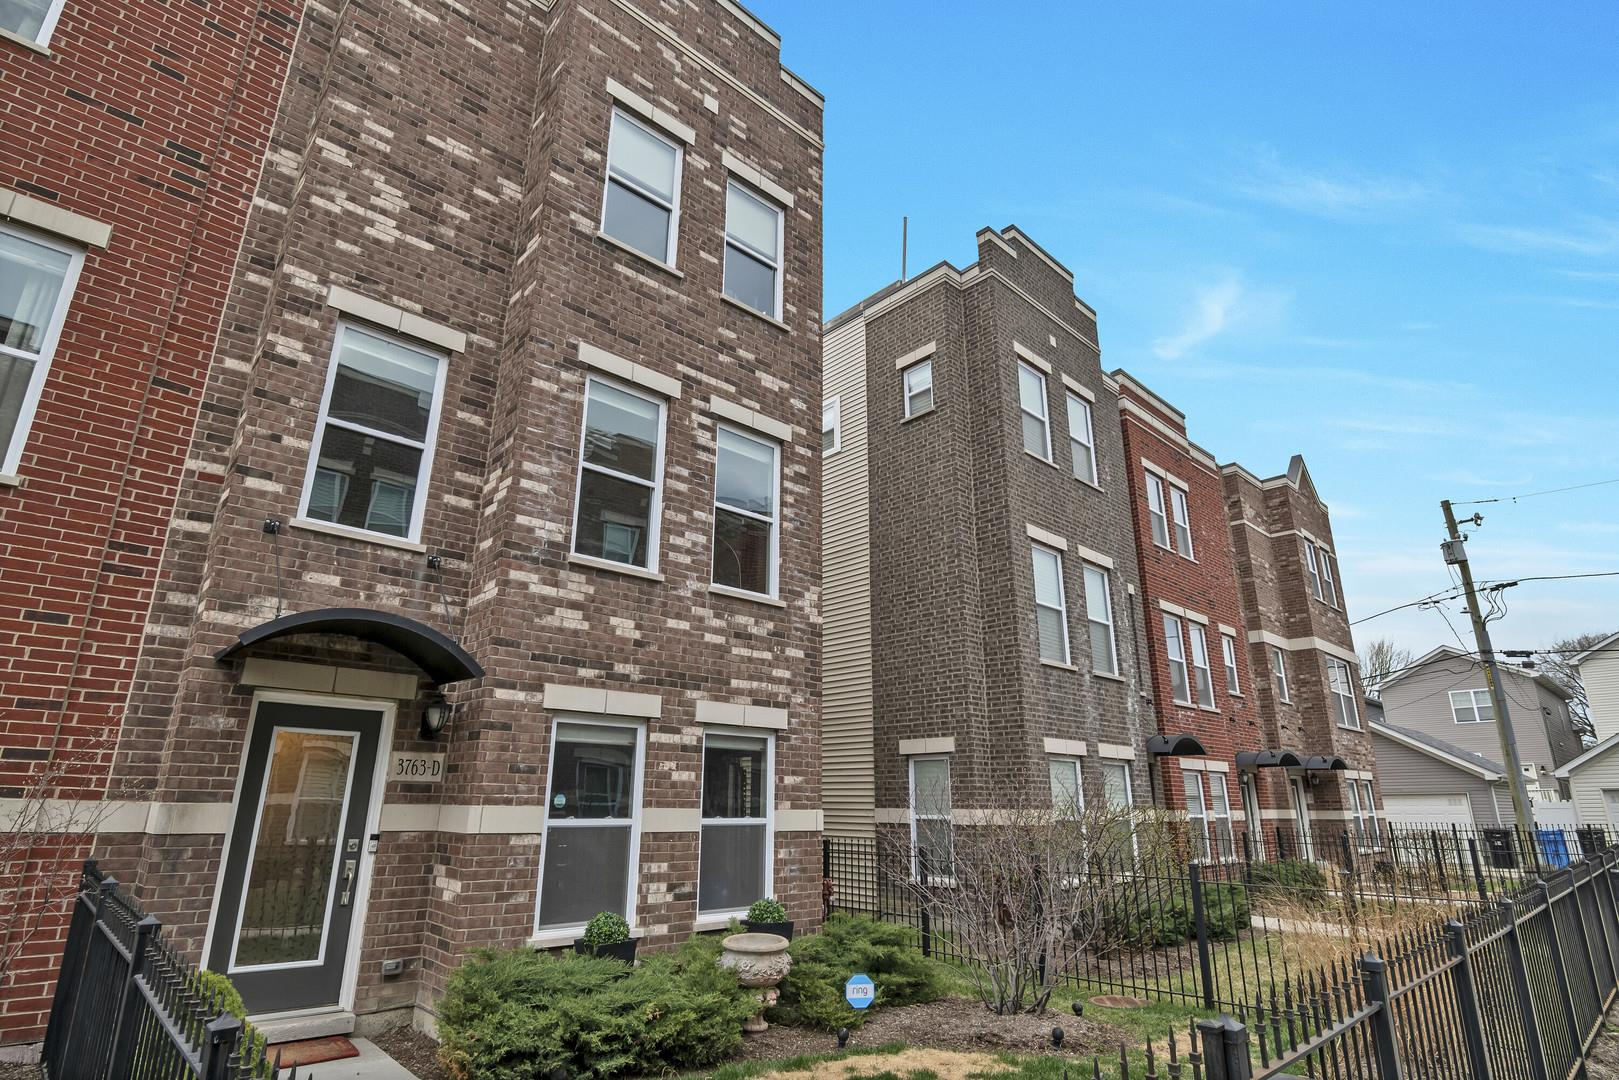 3763 S Morgan Street #D, Chicago, IL 60609 - #: 11042342